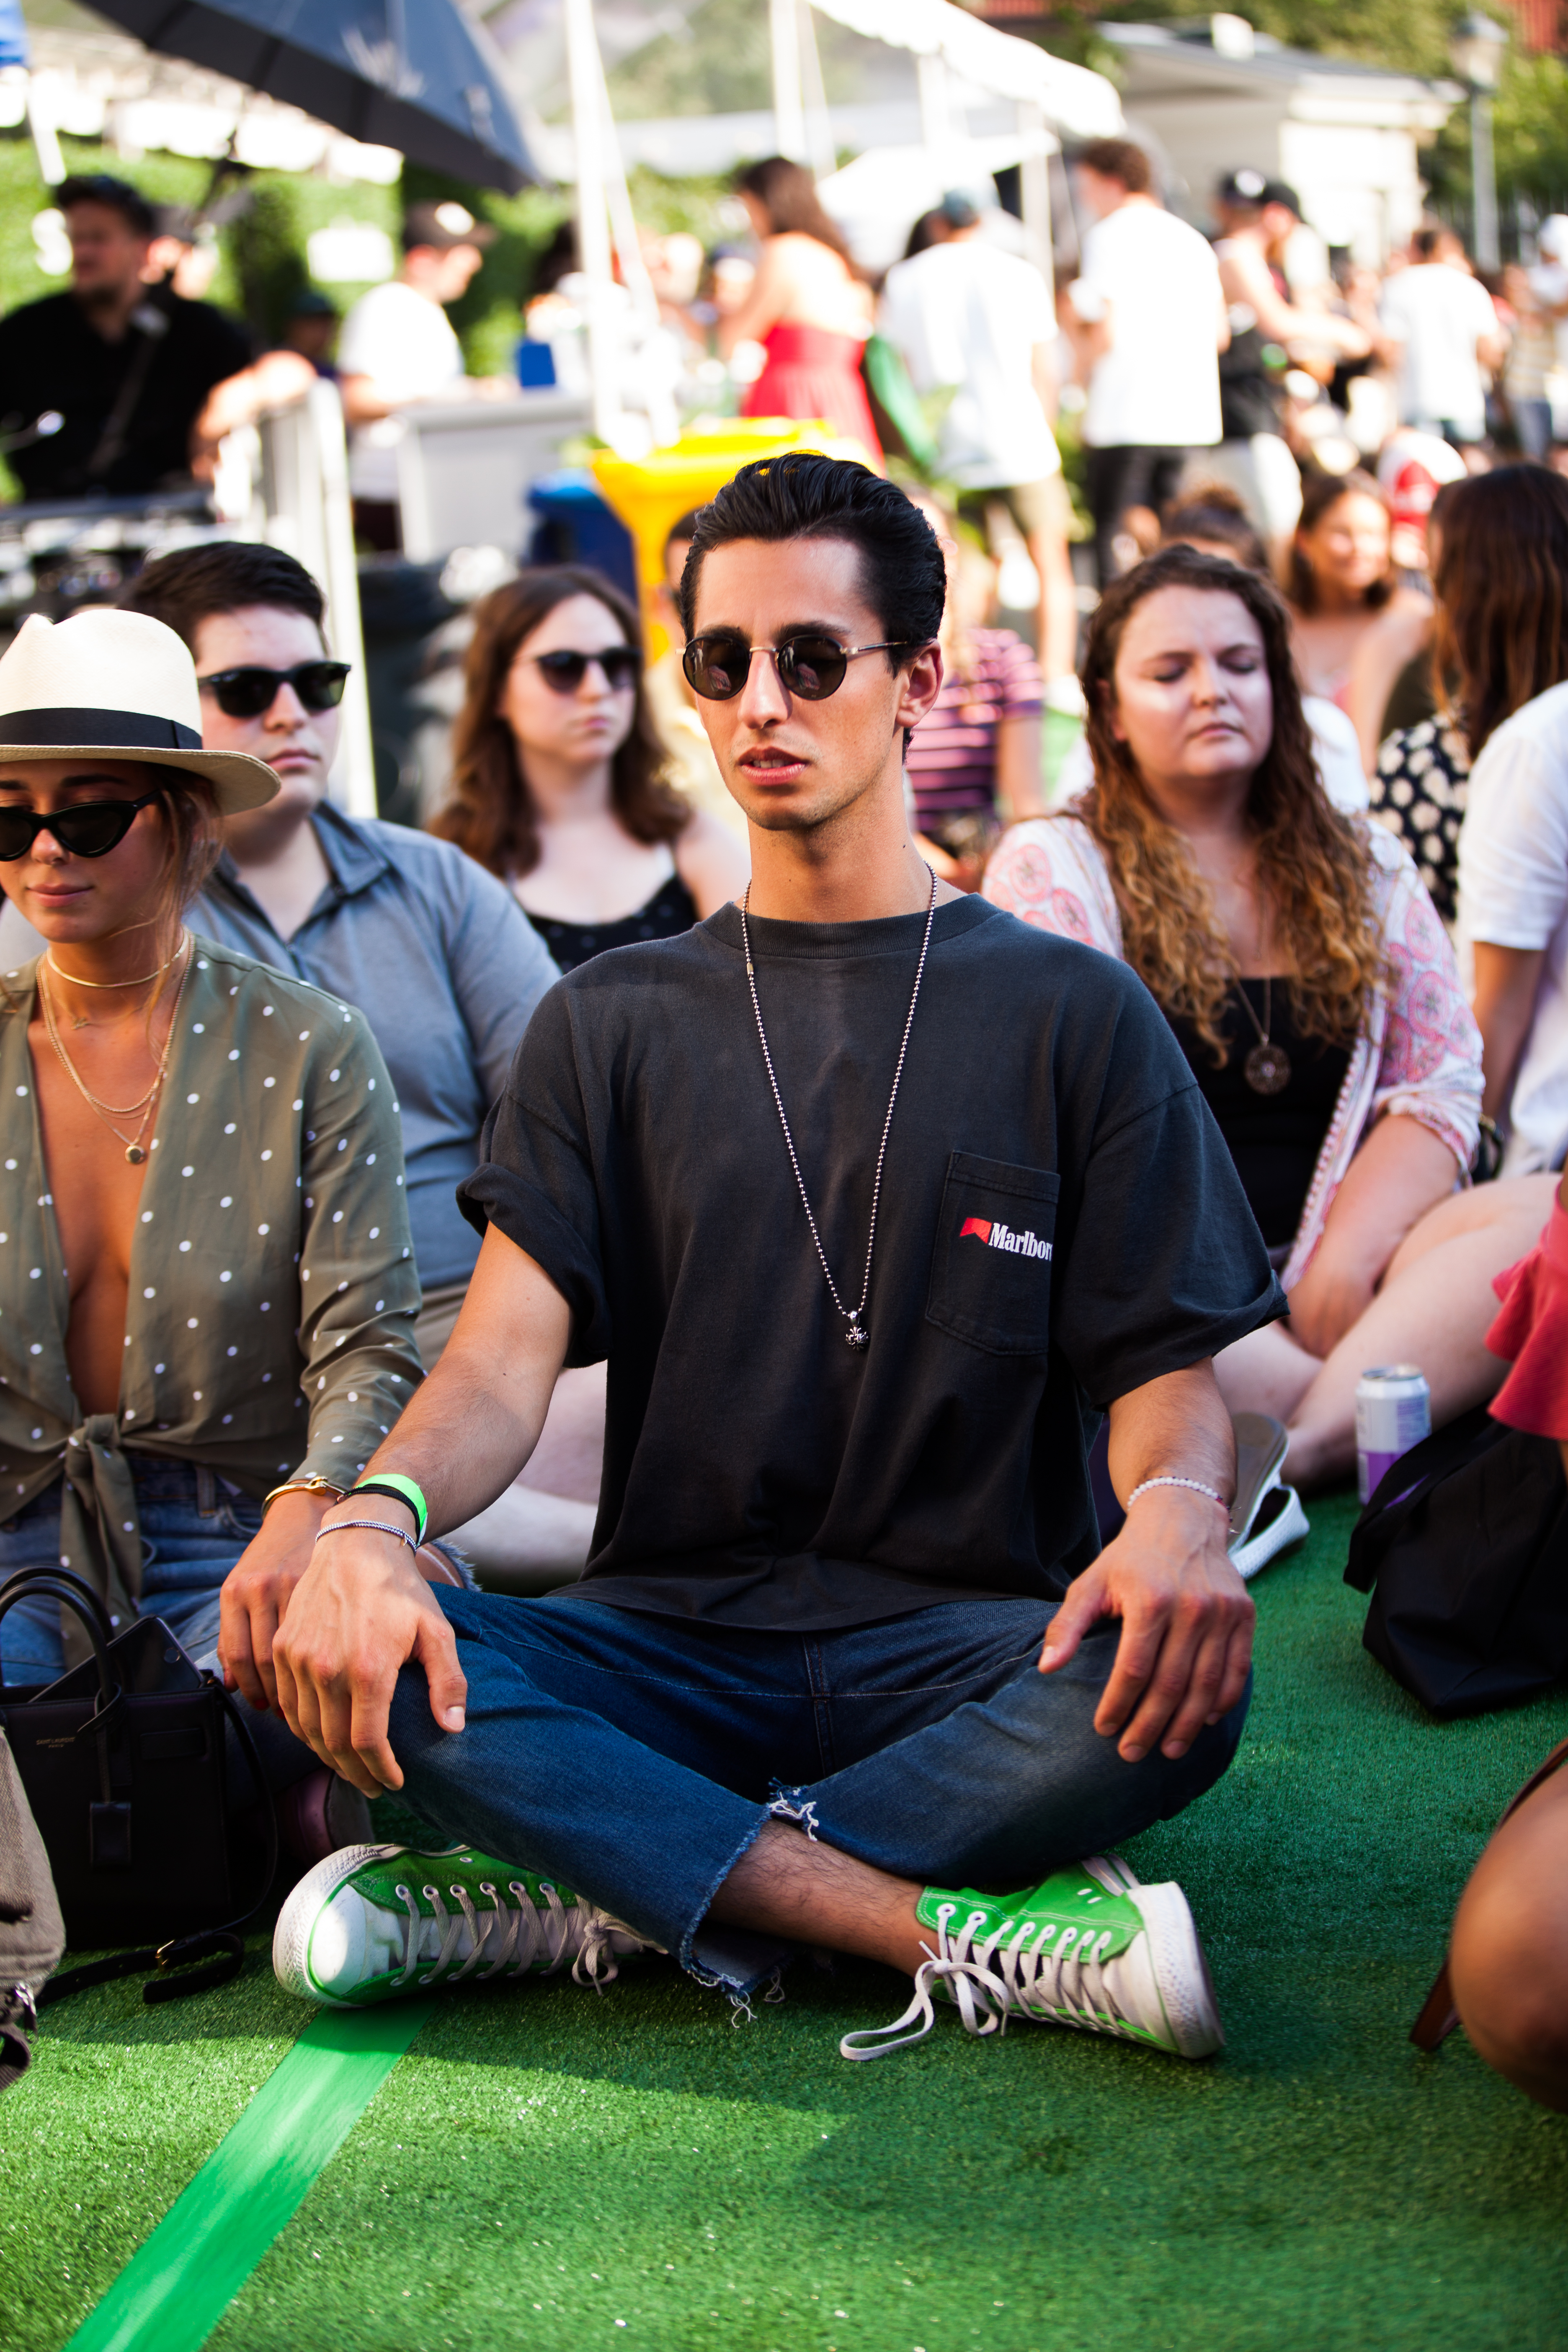 The Big Quiet is a guided mass meditation series that brings thousands of people together at iconic landmarks, like New York's Central Park and the One World Observatory. This 30-minute meditation will feature a sound bath and musicians, and was open to all block party ticket holders. (Image: Jay Snap/ LaDexon Photographie)